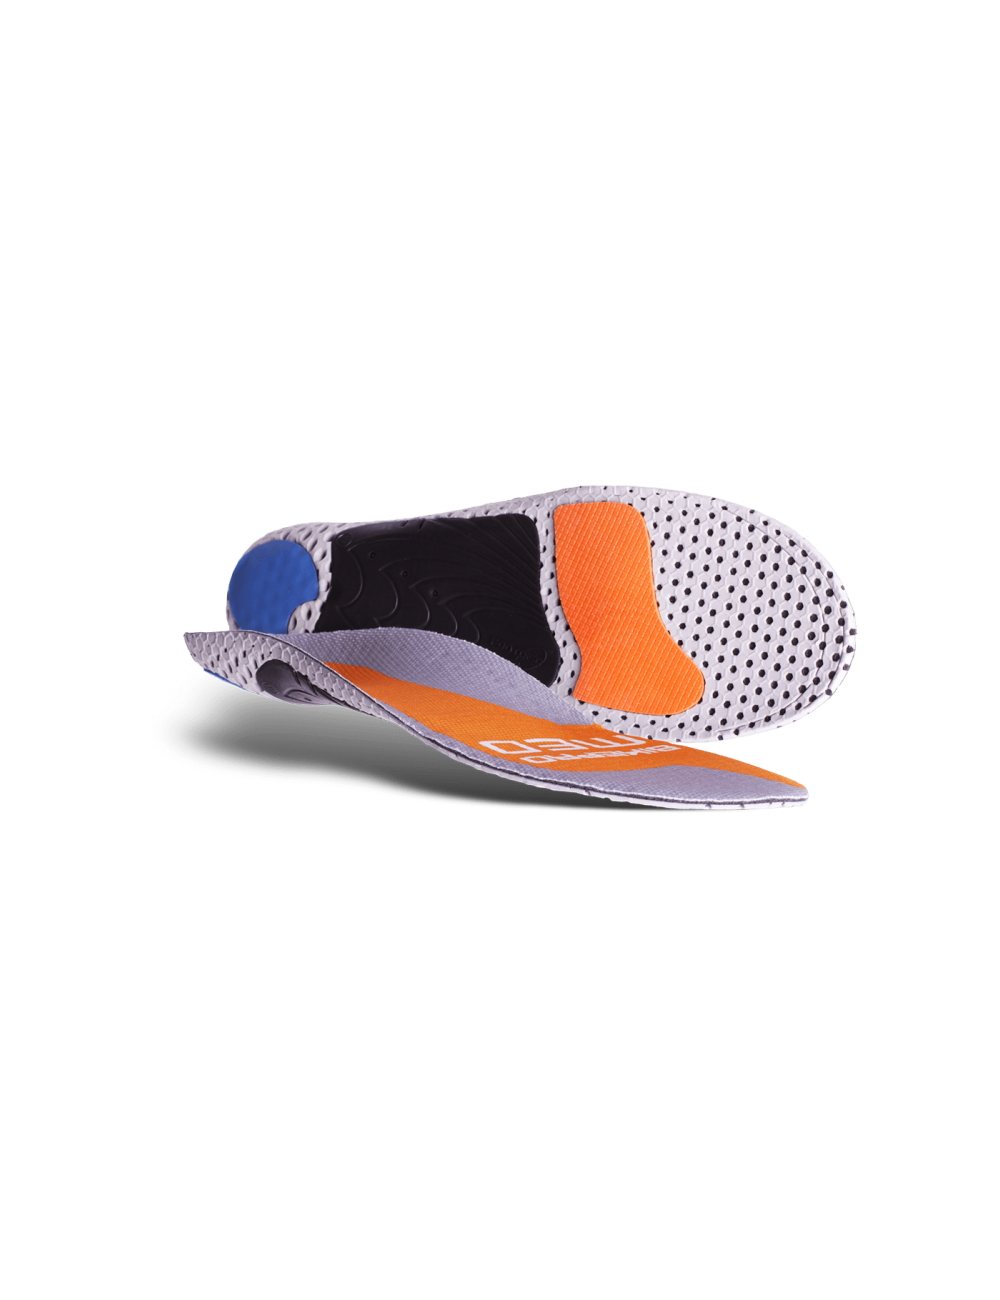 PALMILHA CURREXSOLE BIKE PRO MEDIUM T-XL 44 A 46